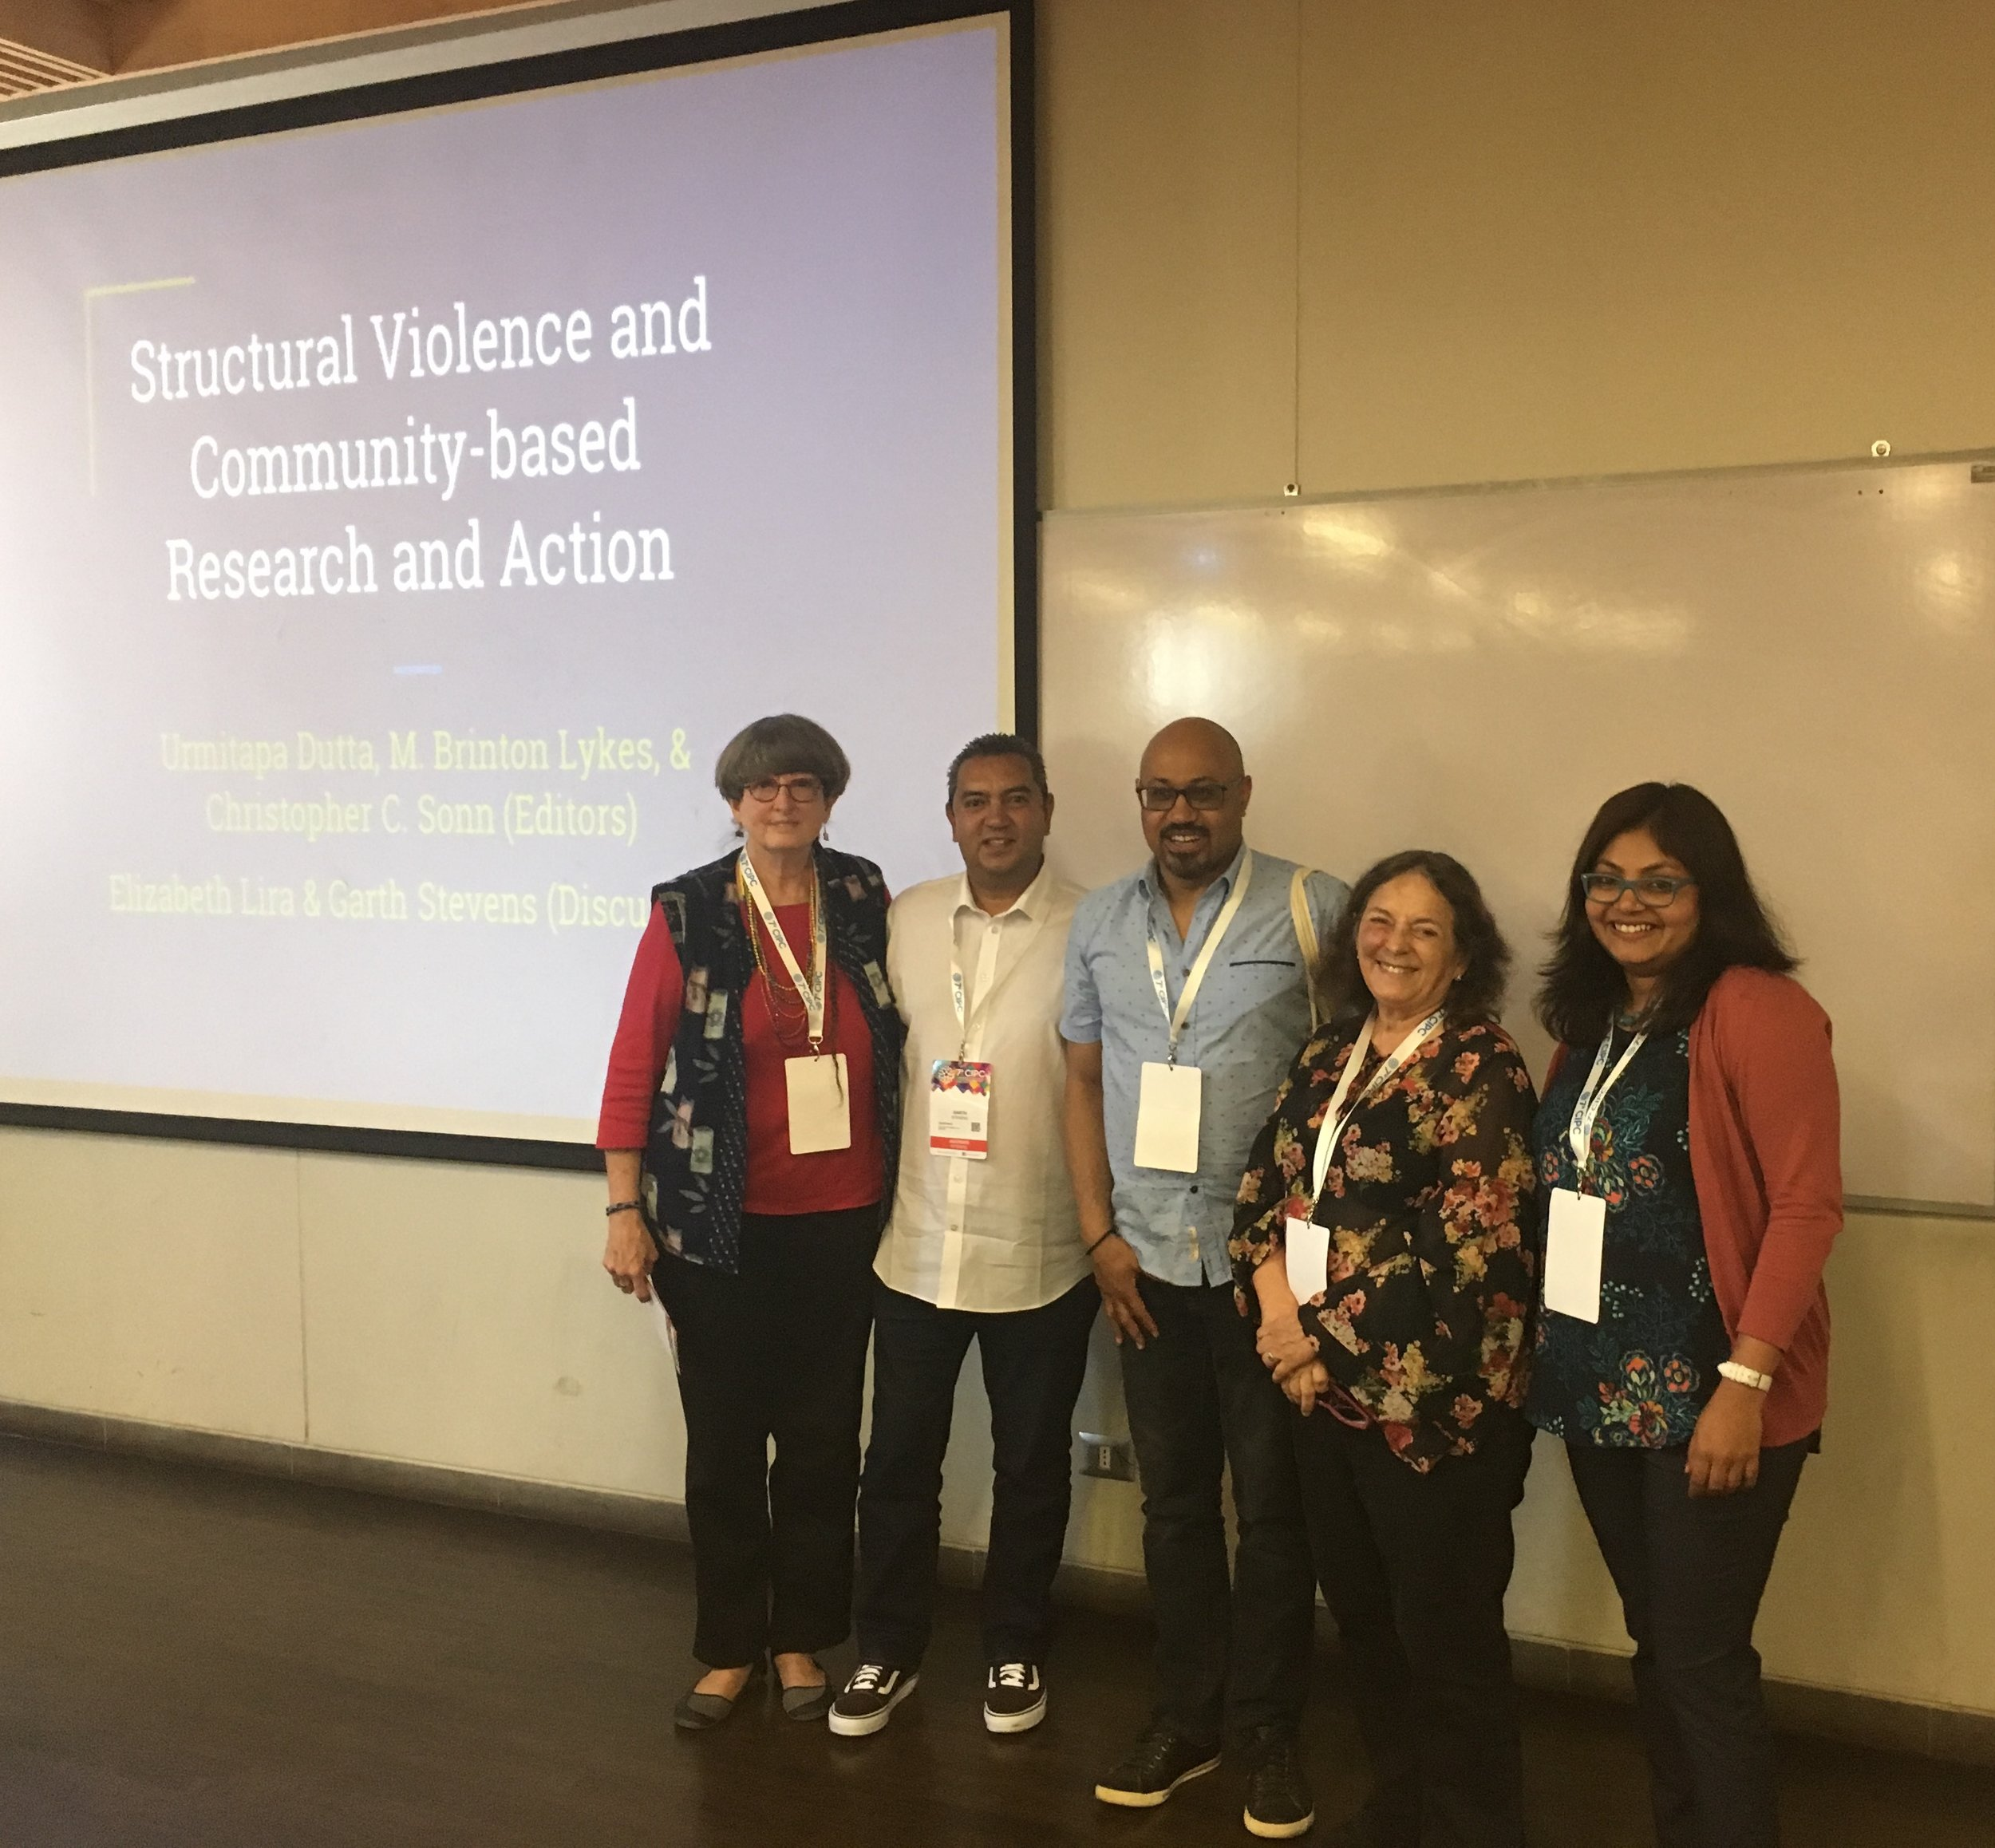 Session featuring the special issue of  Community Psychology in Global Perspective  on structural violence (2018 International Conference of Community Psychology) - With M. Brinton Lykes, Garth Stevens, Christopher Sonn, & Elizabeth Lira